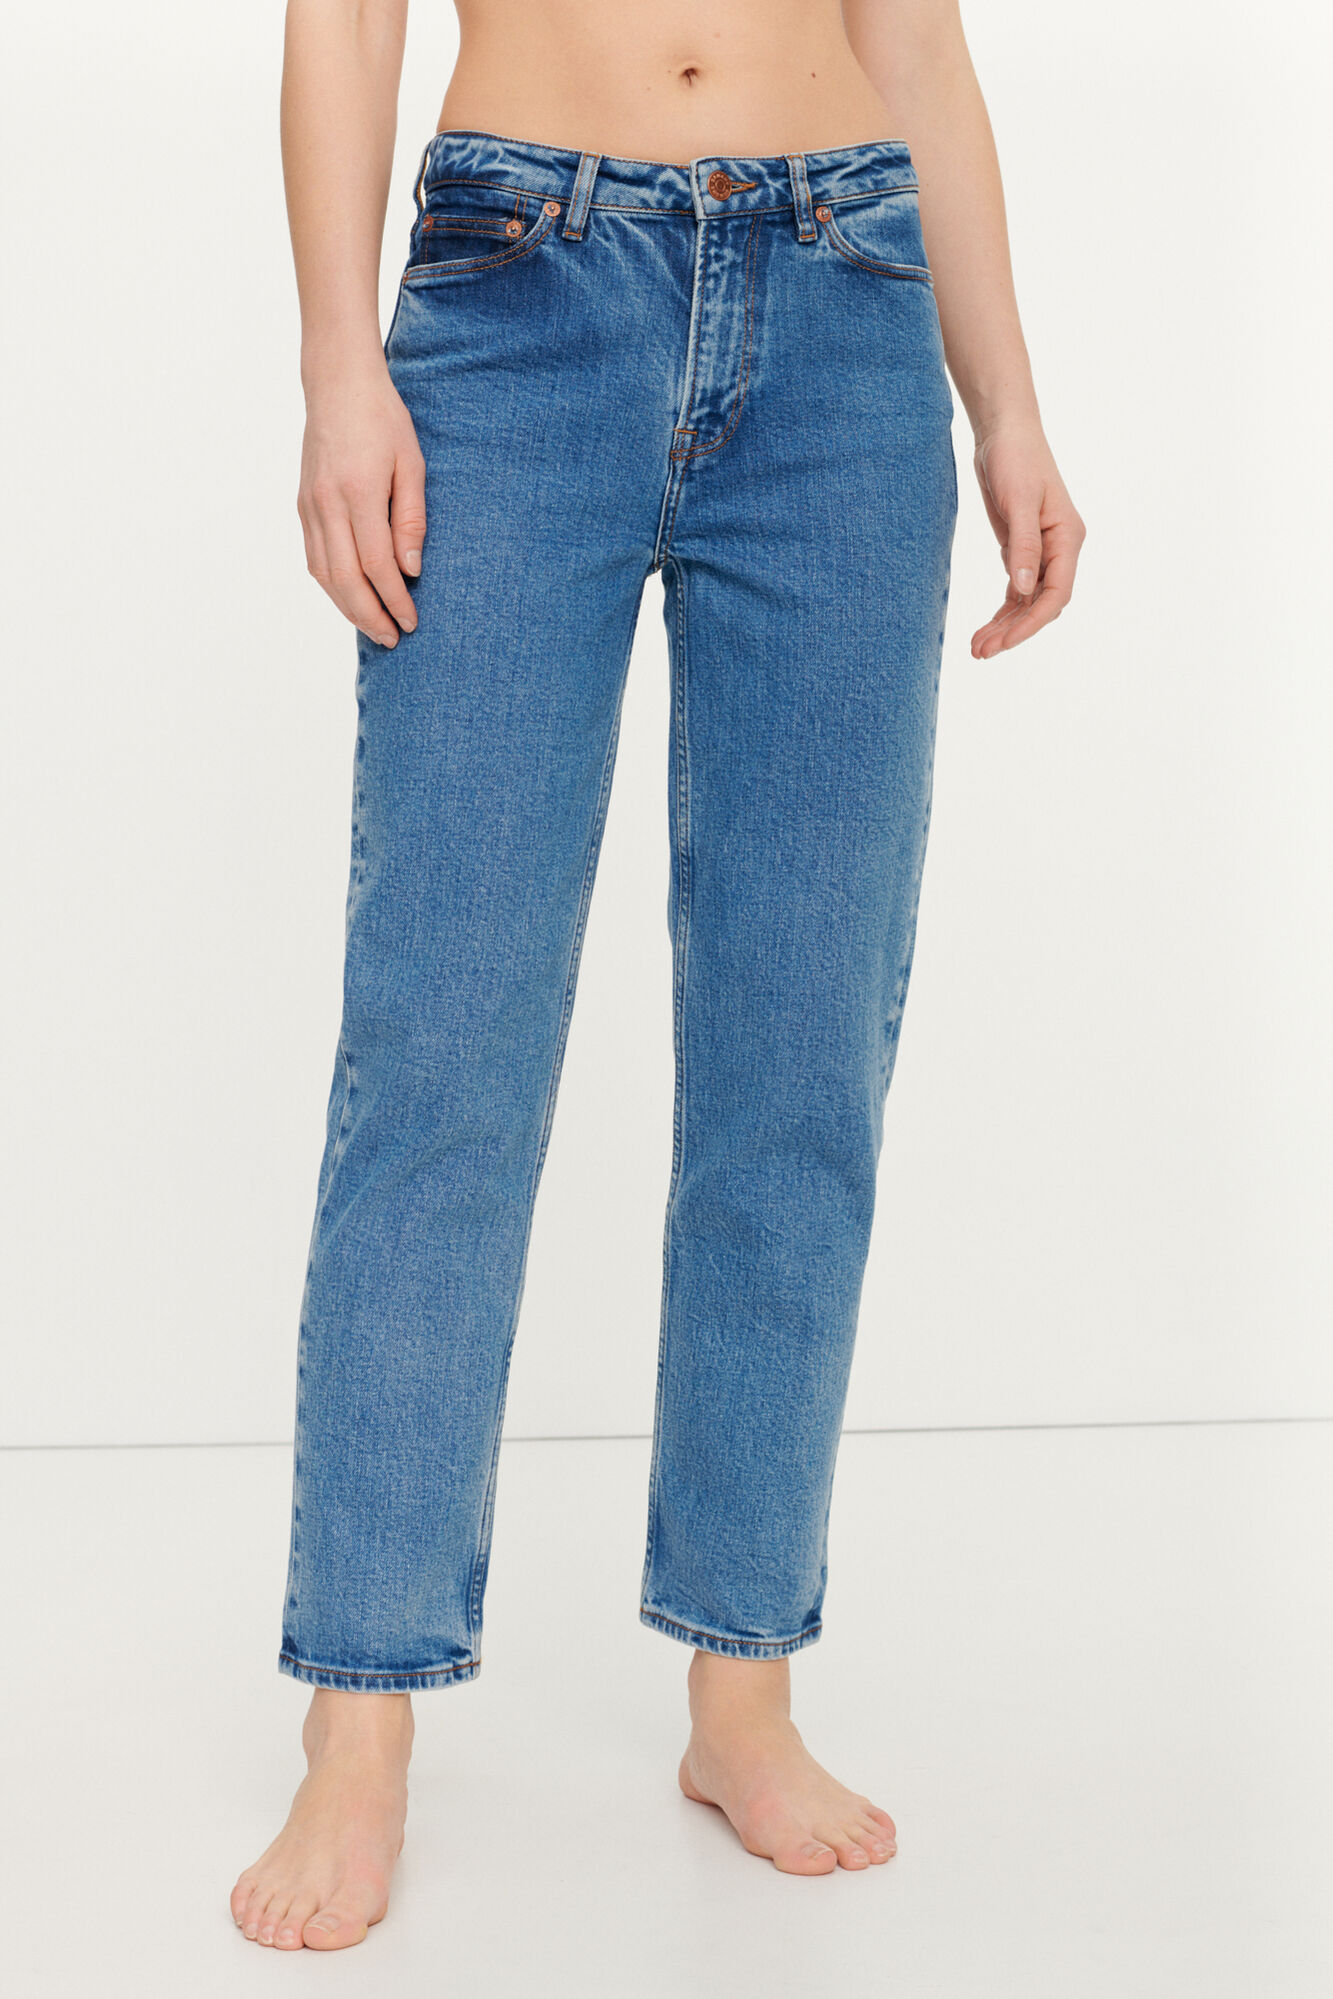 Marianne jeans 11354